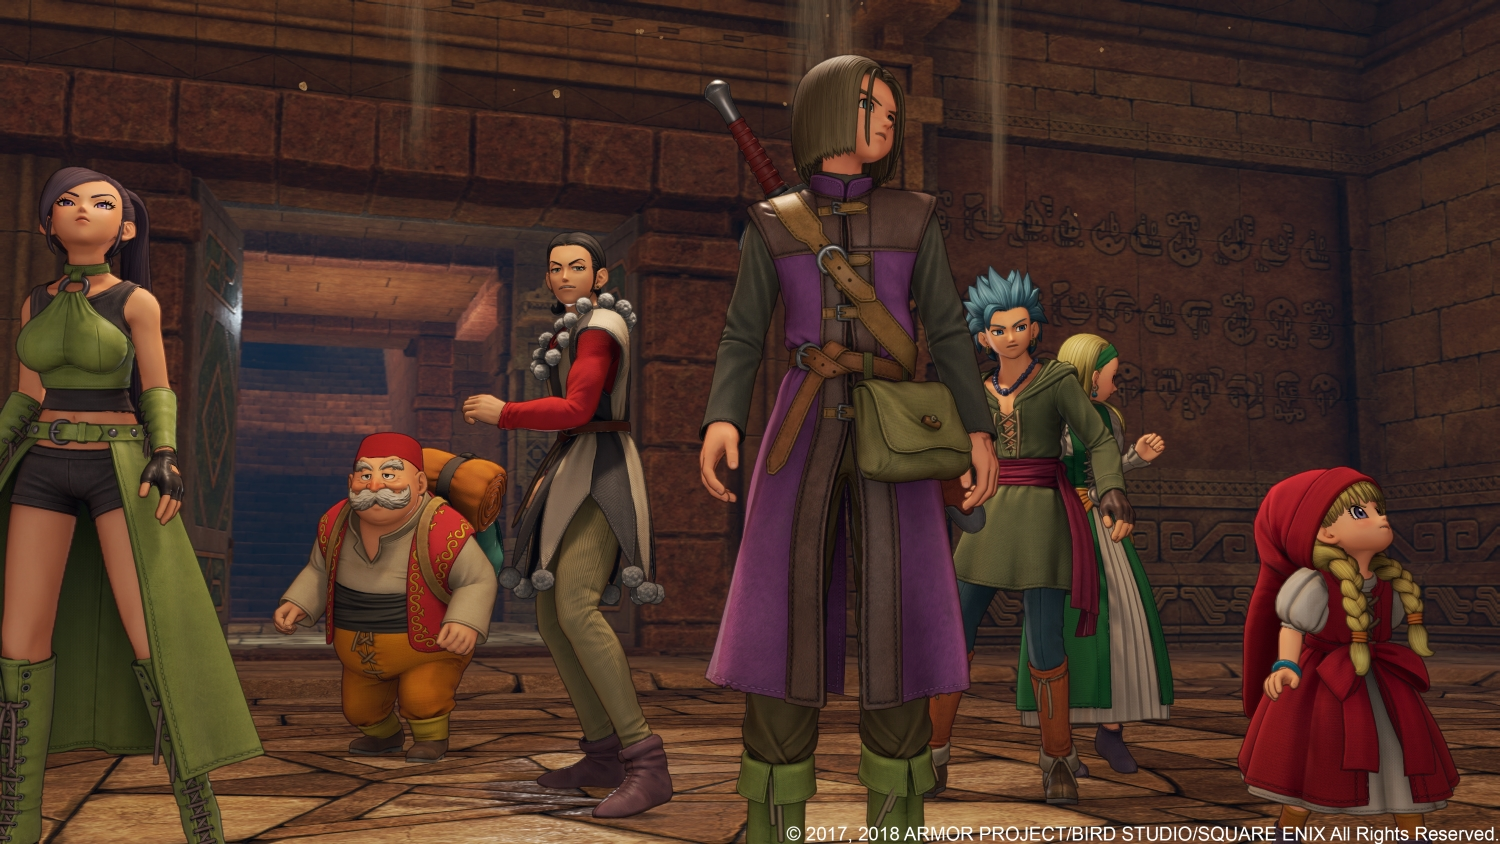 Dragon Quest XI (PS4) - the Werther's Original of JRPGs